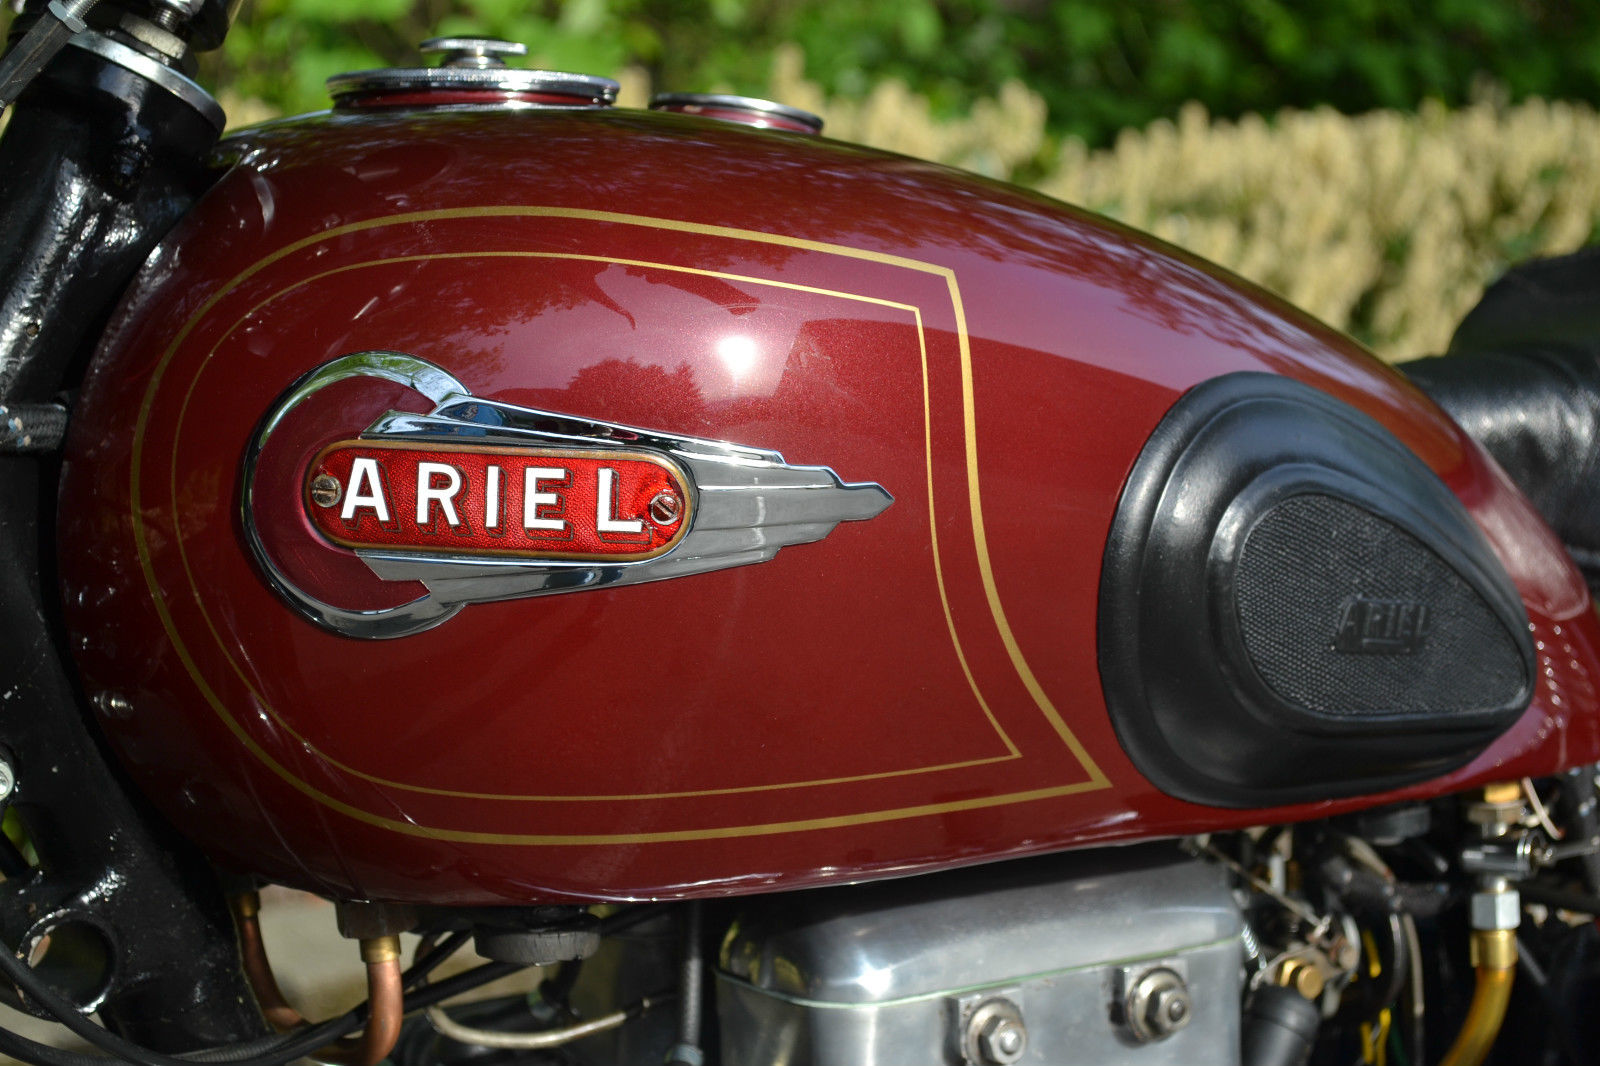 Ariel Square Four - 1952 - Ariel Tank Badge and Fuel Tank.